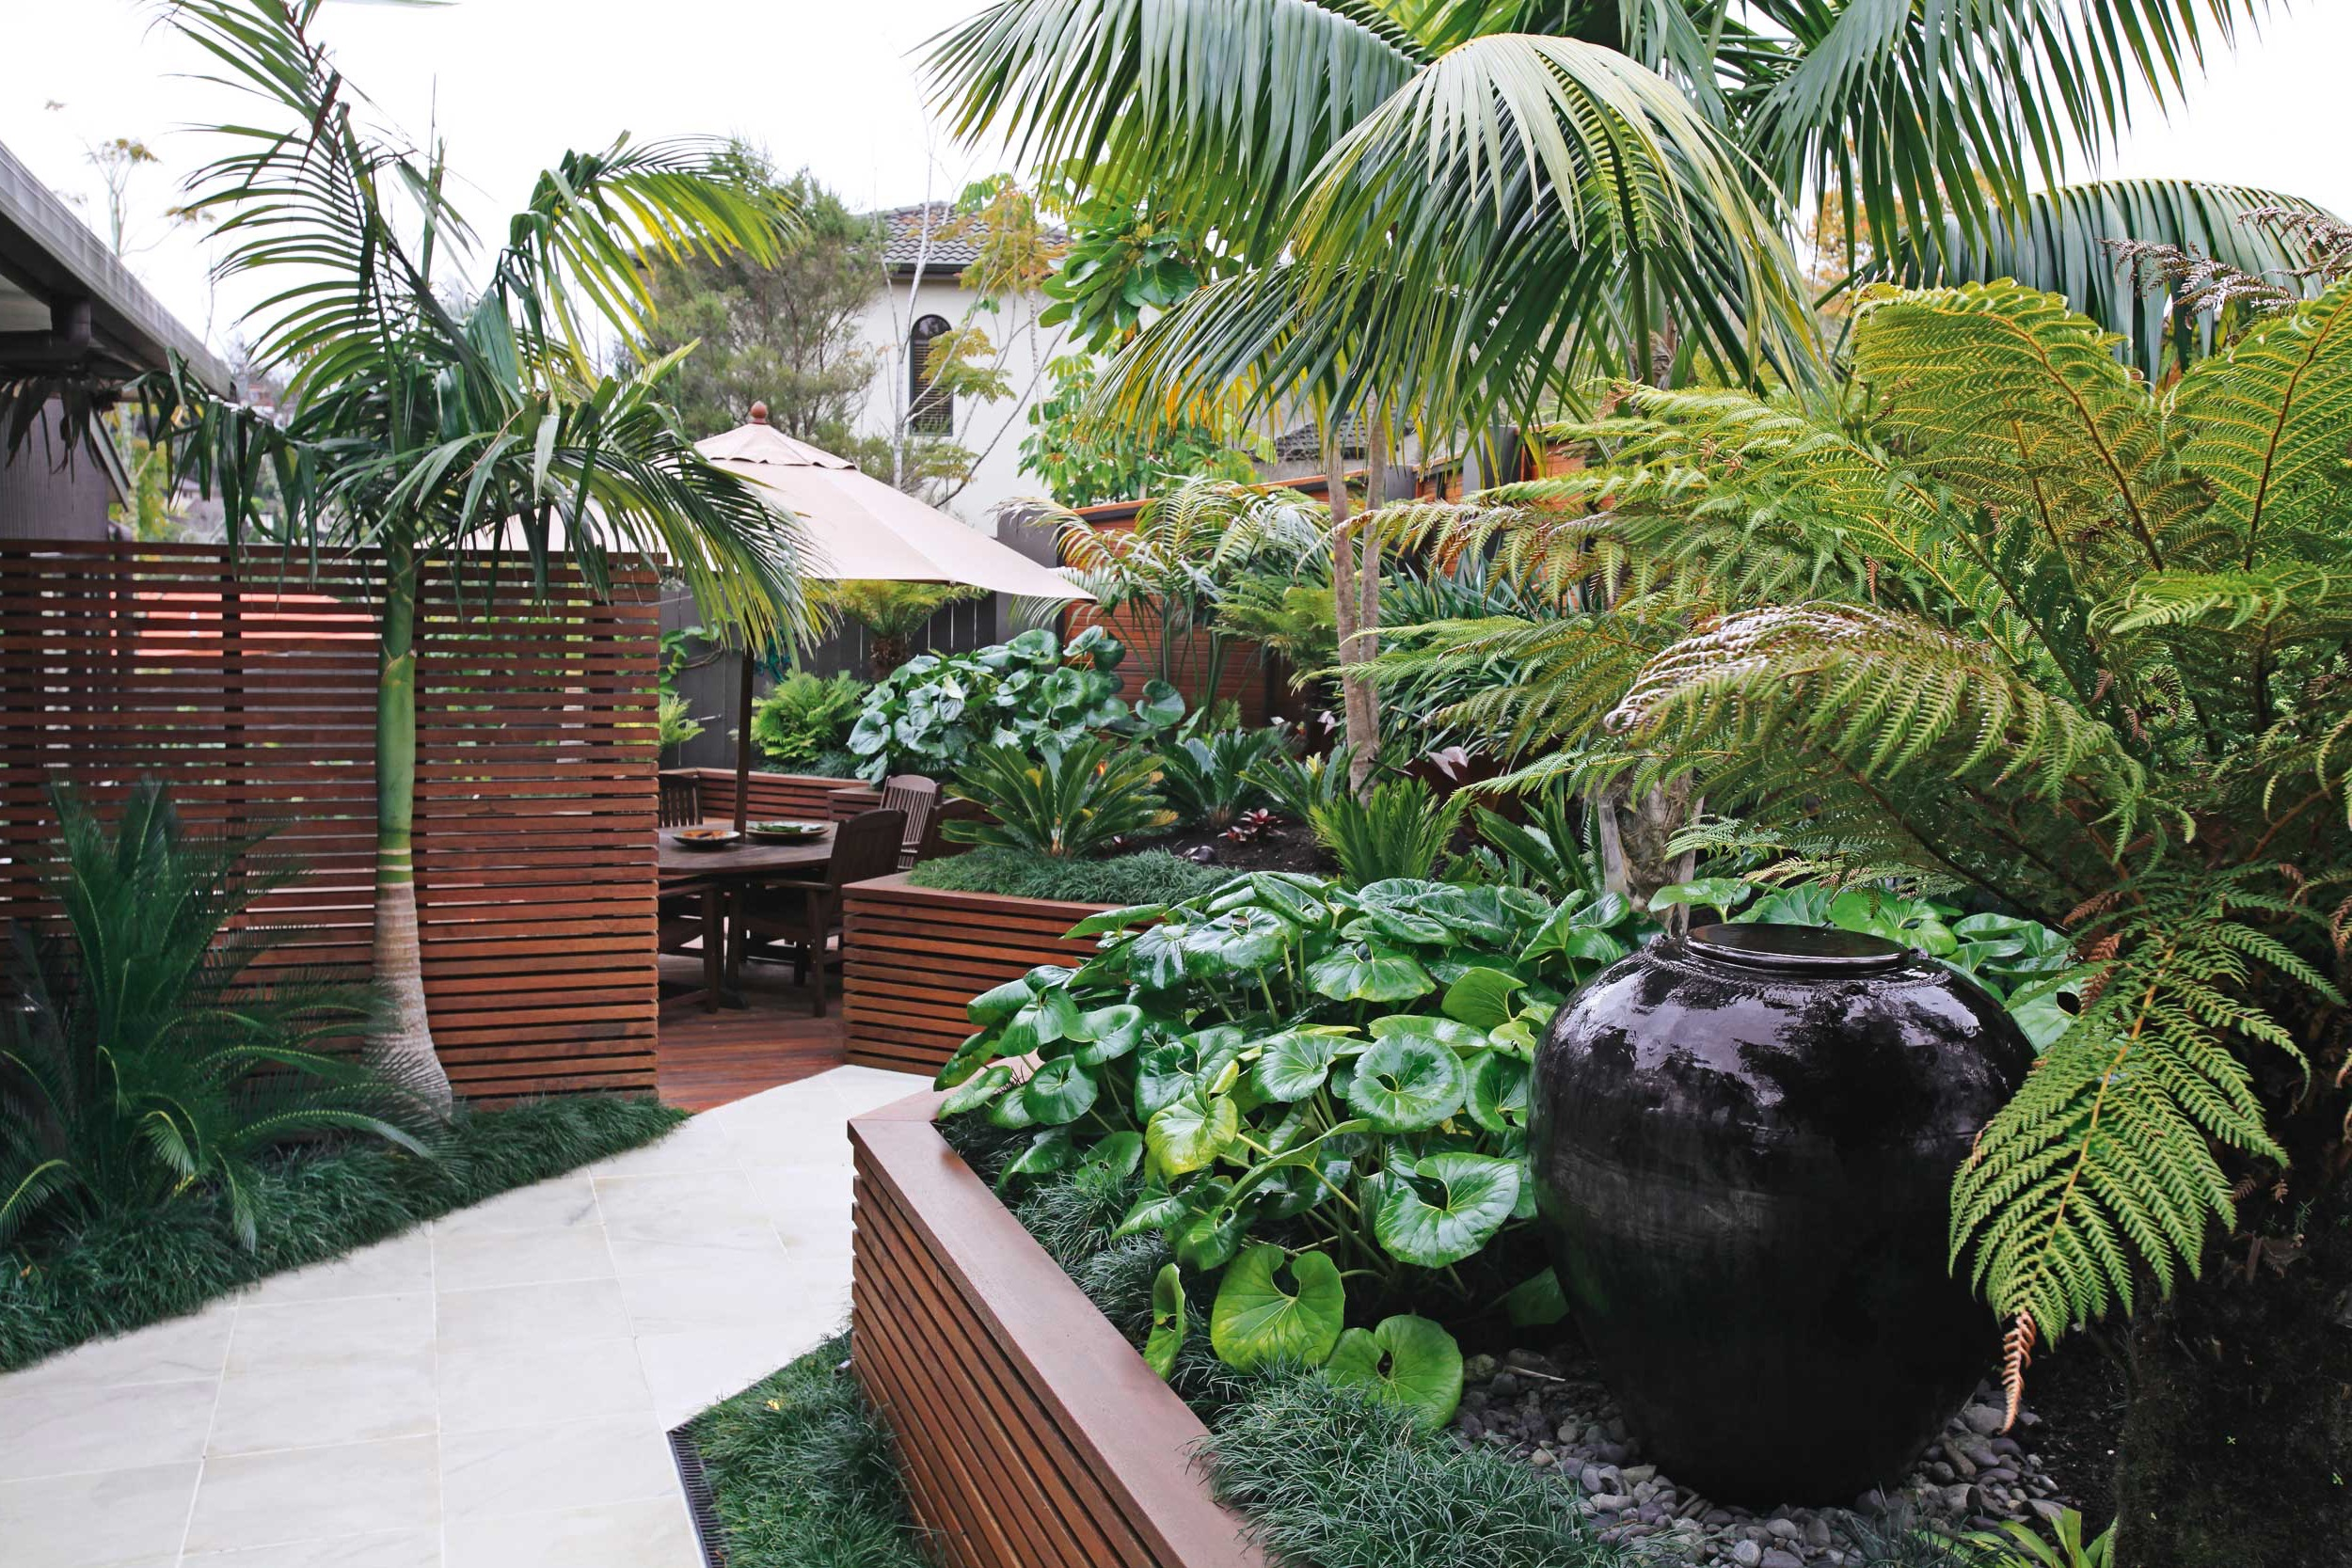 Tropical Home Garden For A Hot Style #16342 | Garden Ideas